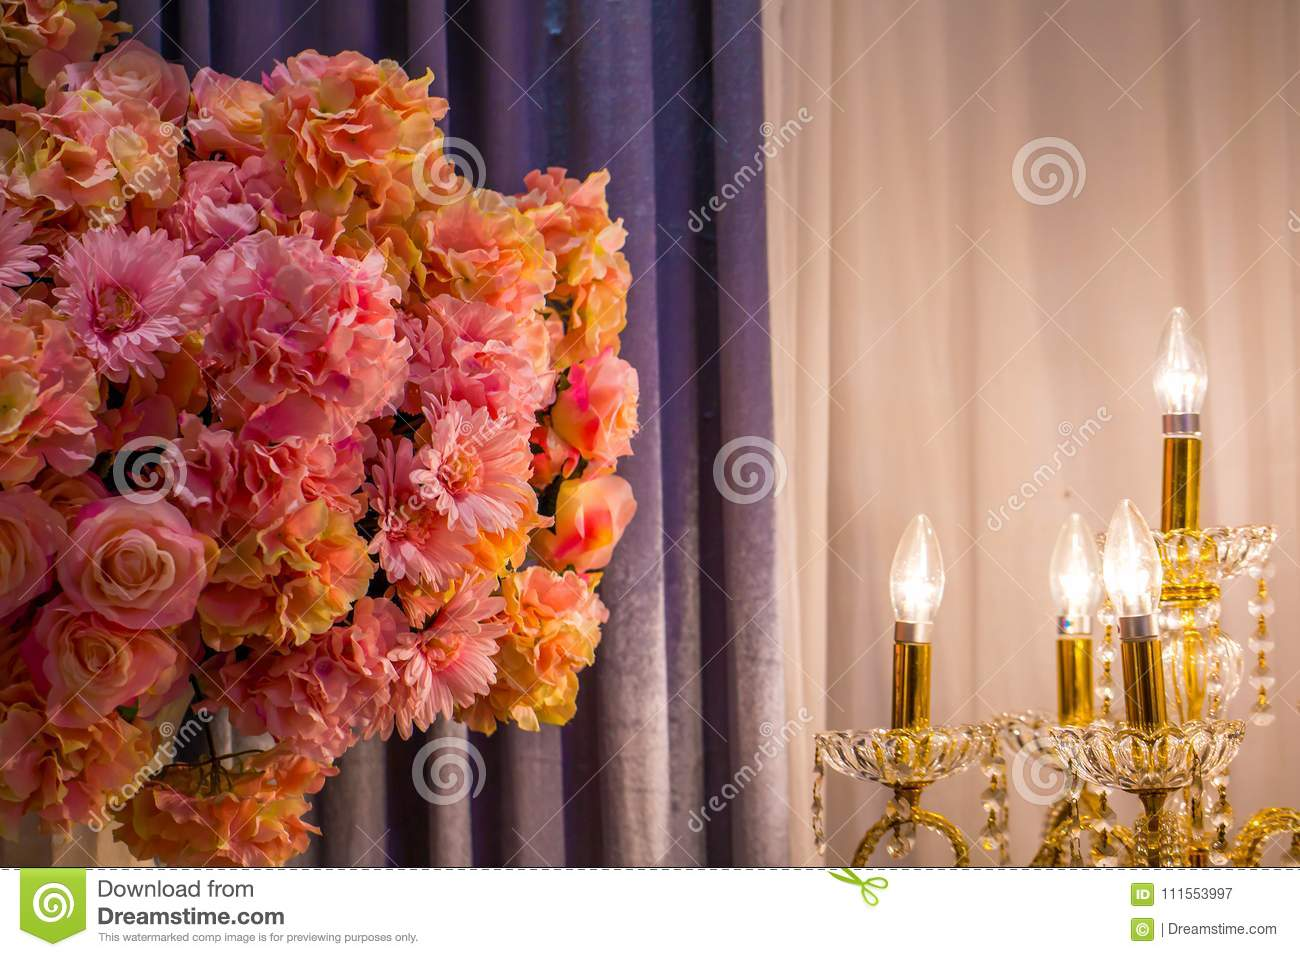 The Pink Flowers In Room With Electronic Candle Light Gray Curtain Romantic